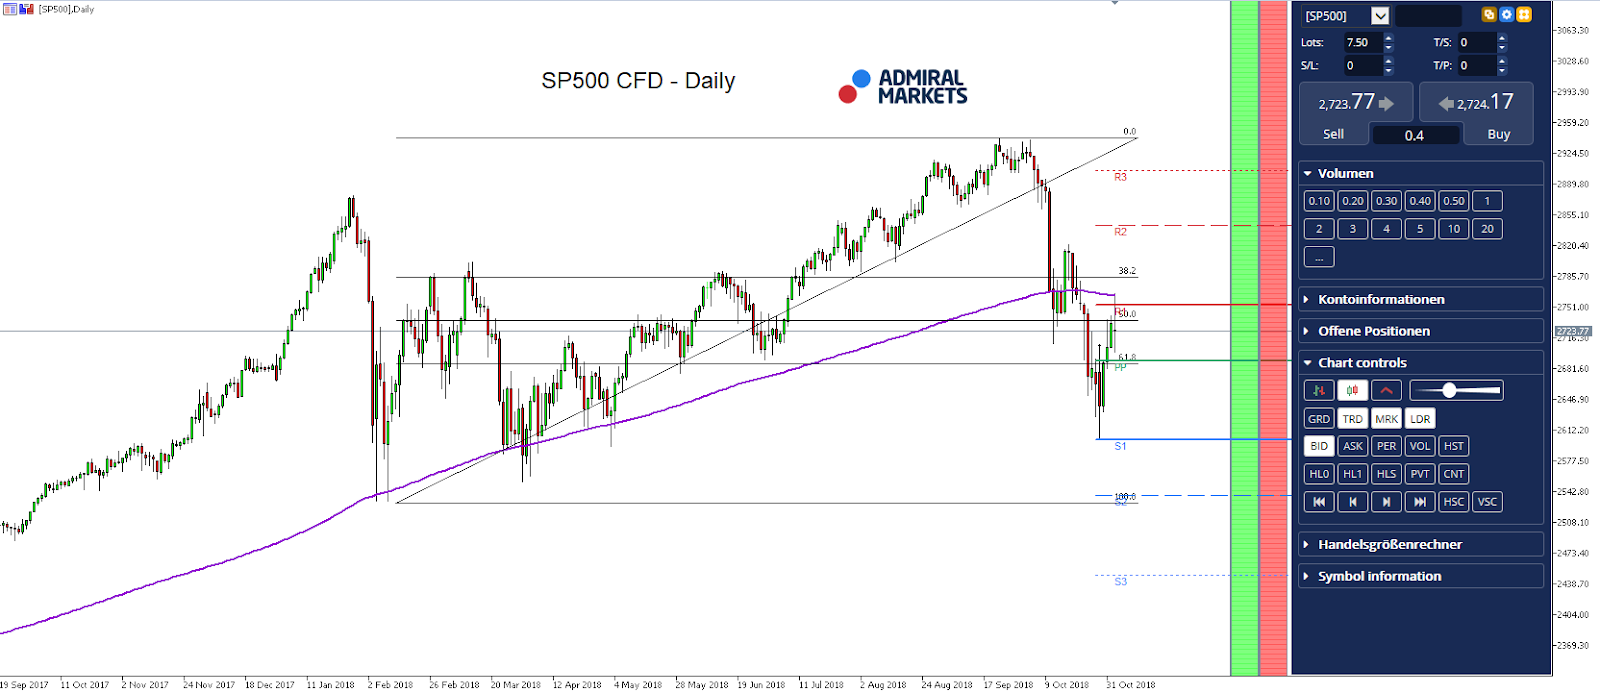 SP500 CFD Daily